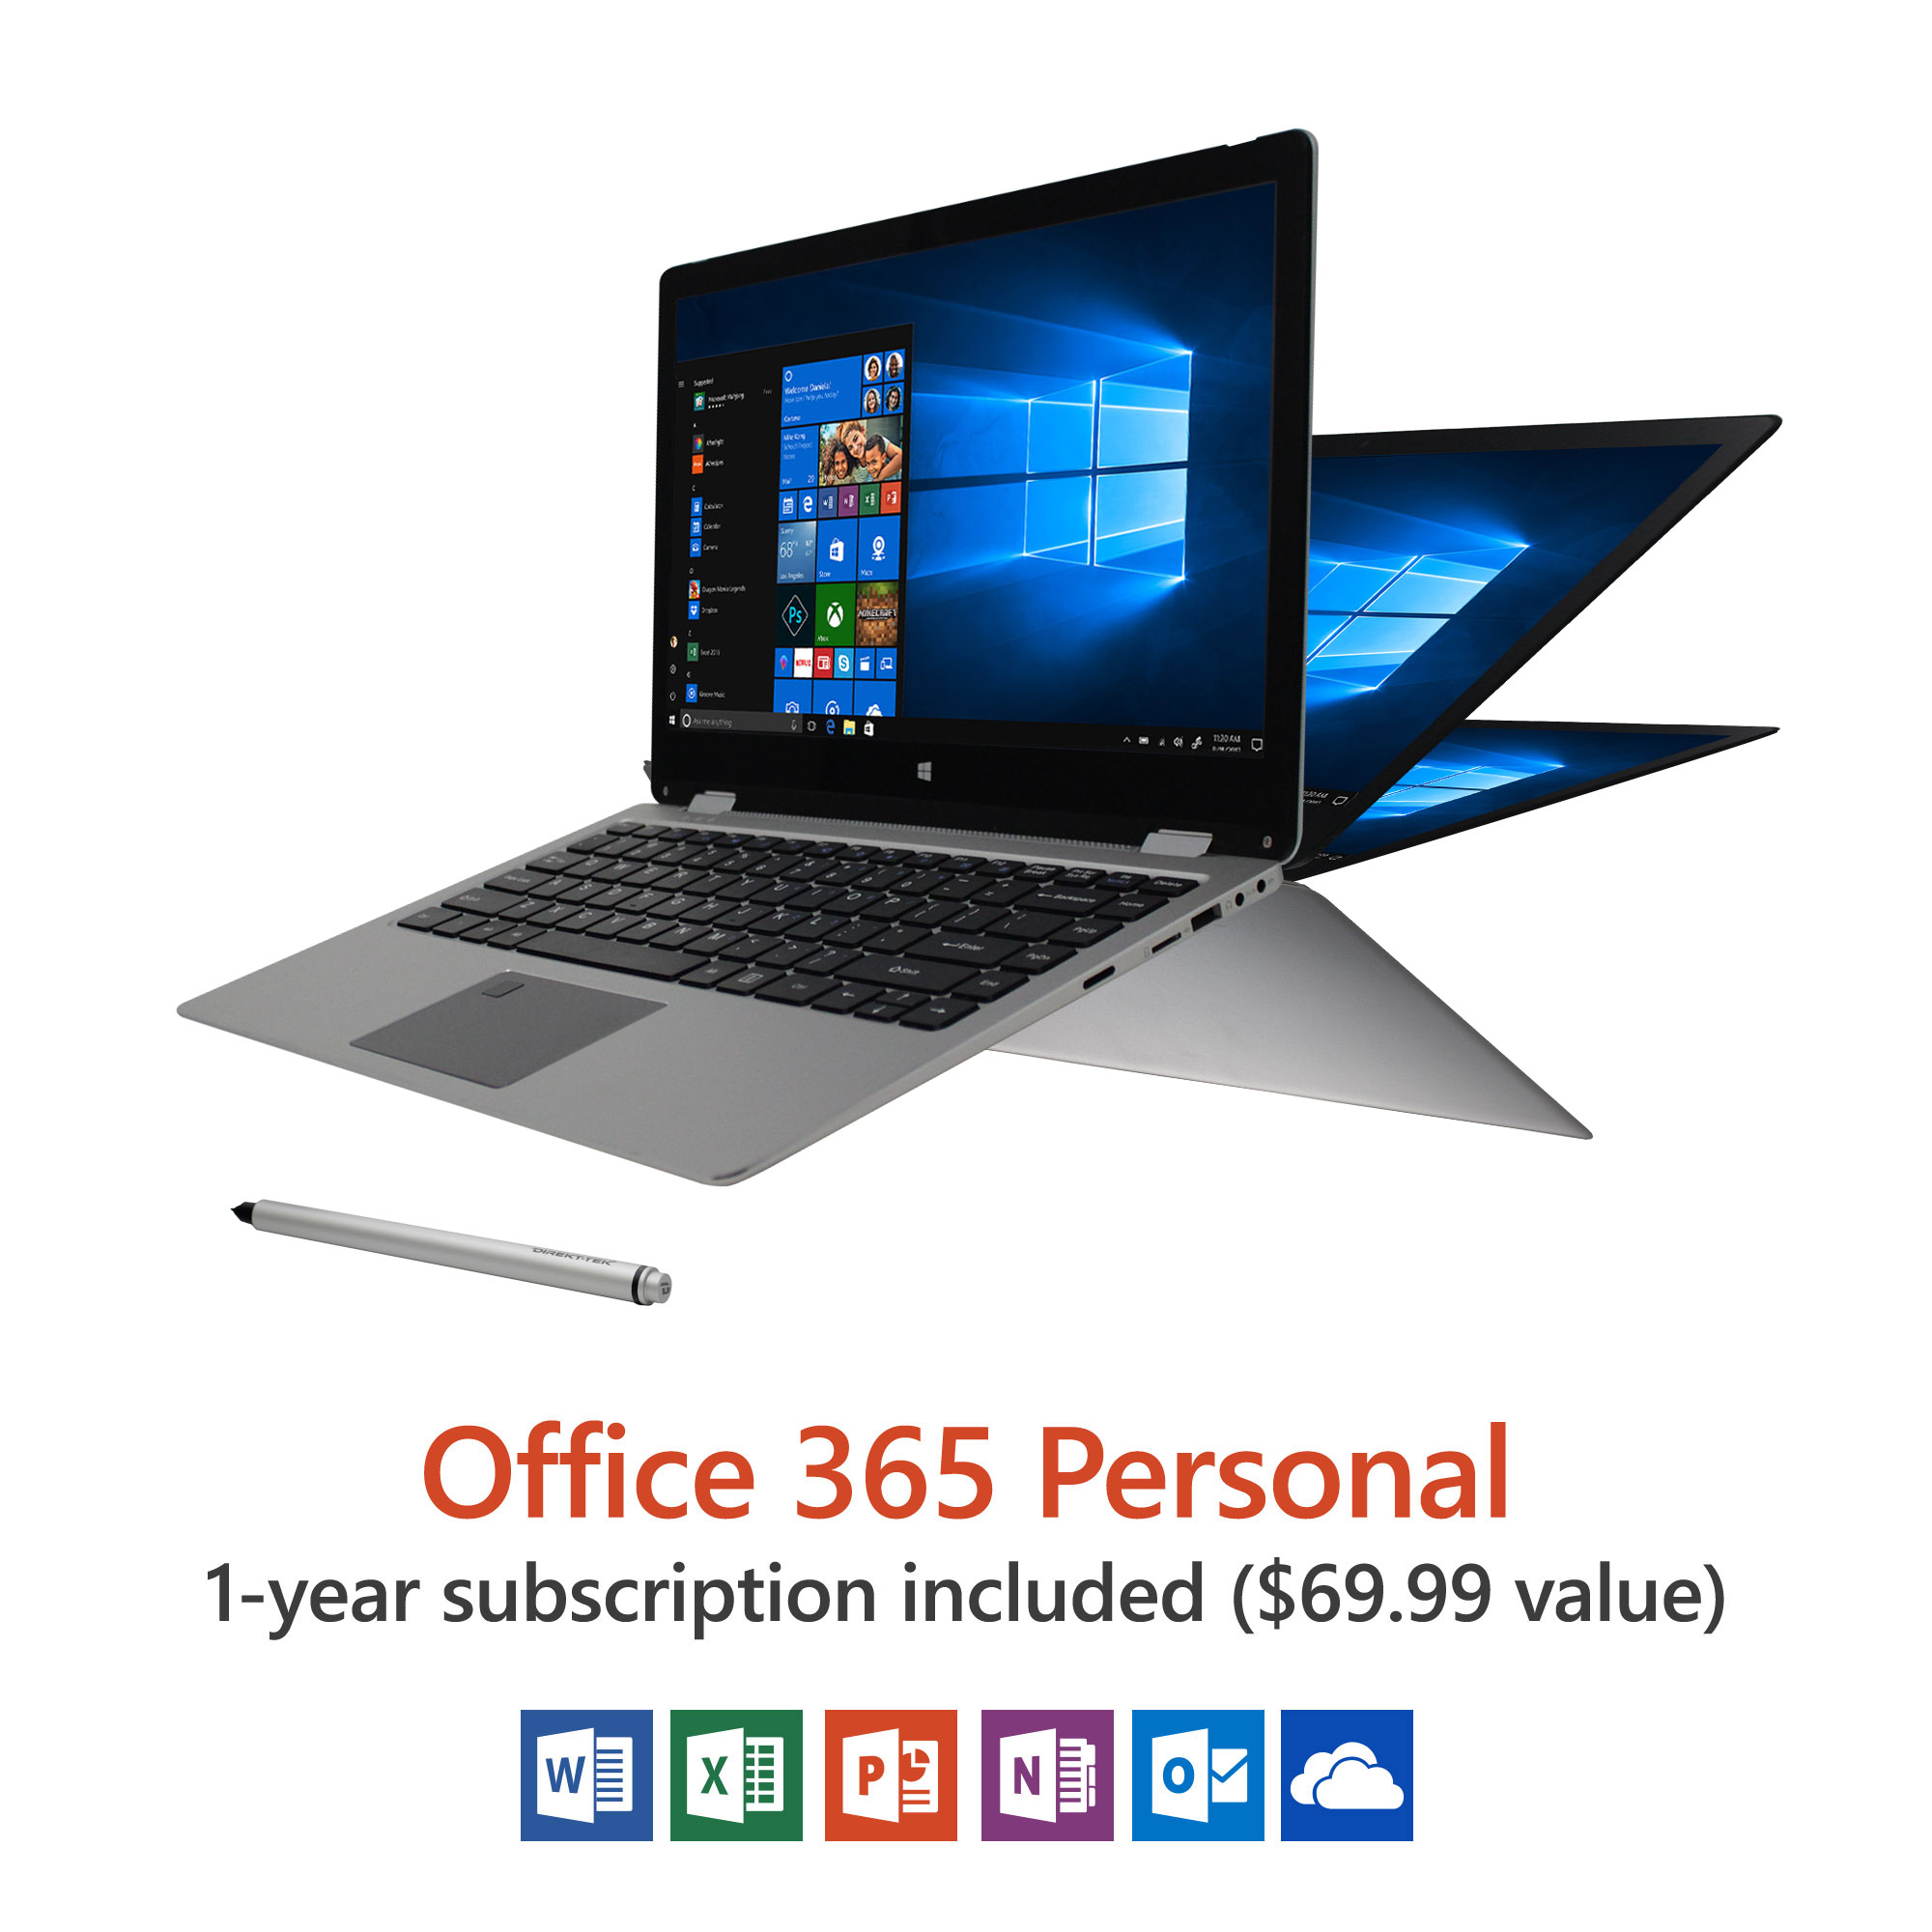 "13.3"" Convertible Touchscreen Laptop, Windows 10 Home, Office 365 Personal 1-Year Subscription Included ($69.99 Value), Windows Hello (Fingerprint Reader), Windows Ink (Smart Stylus included)"